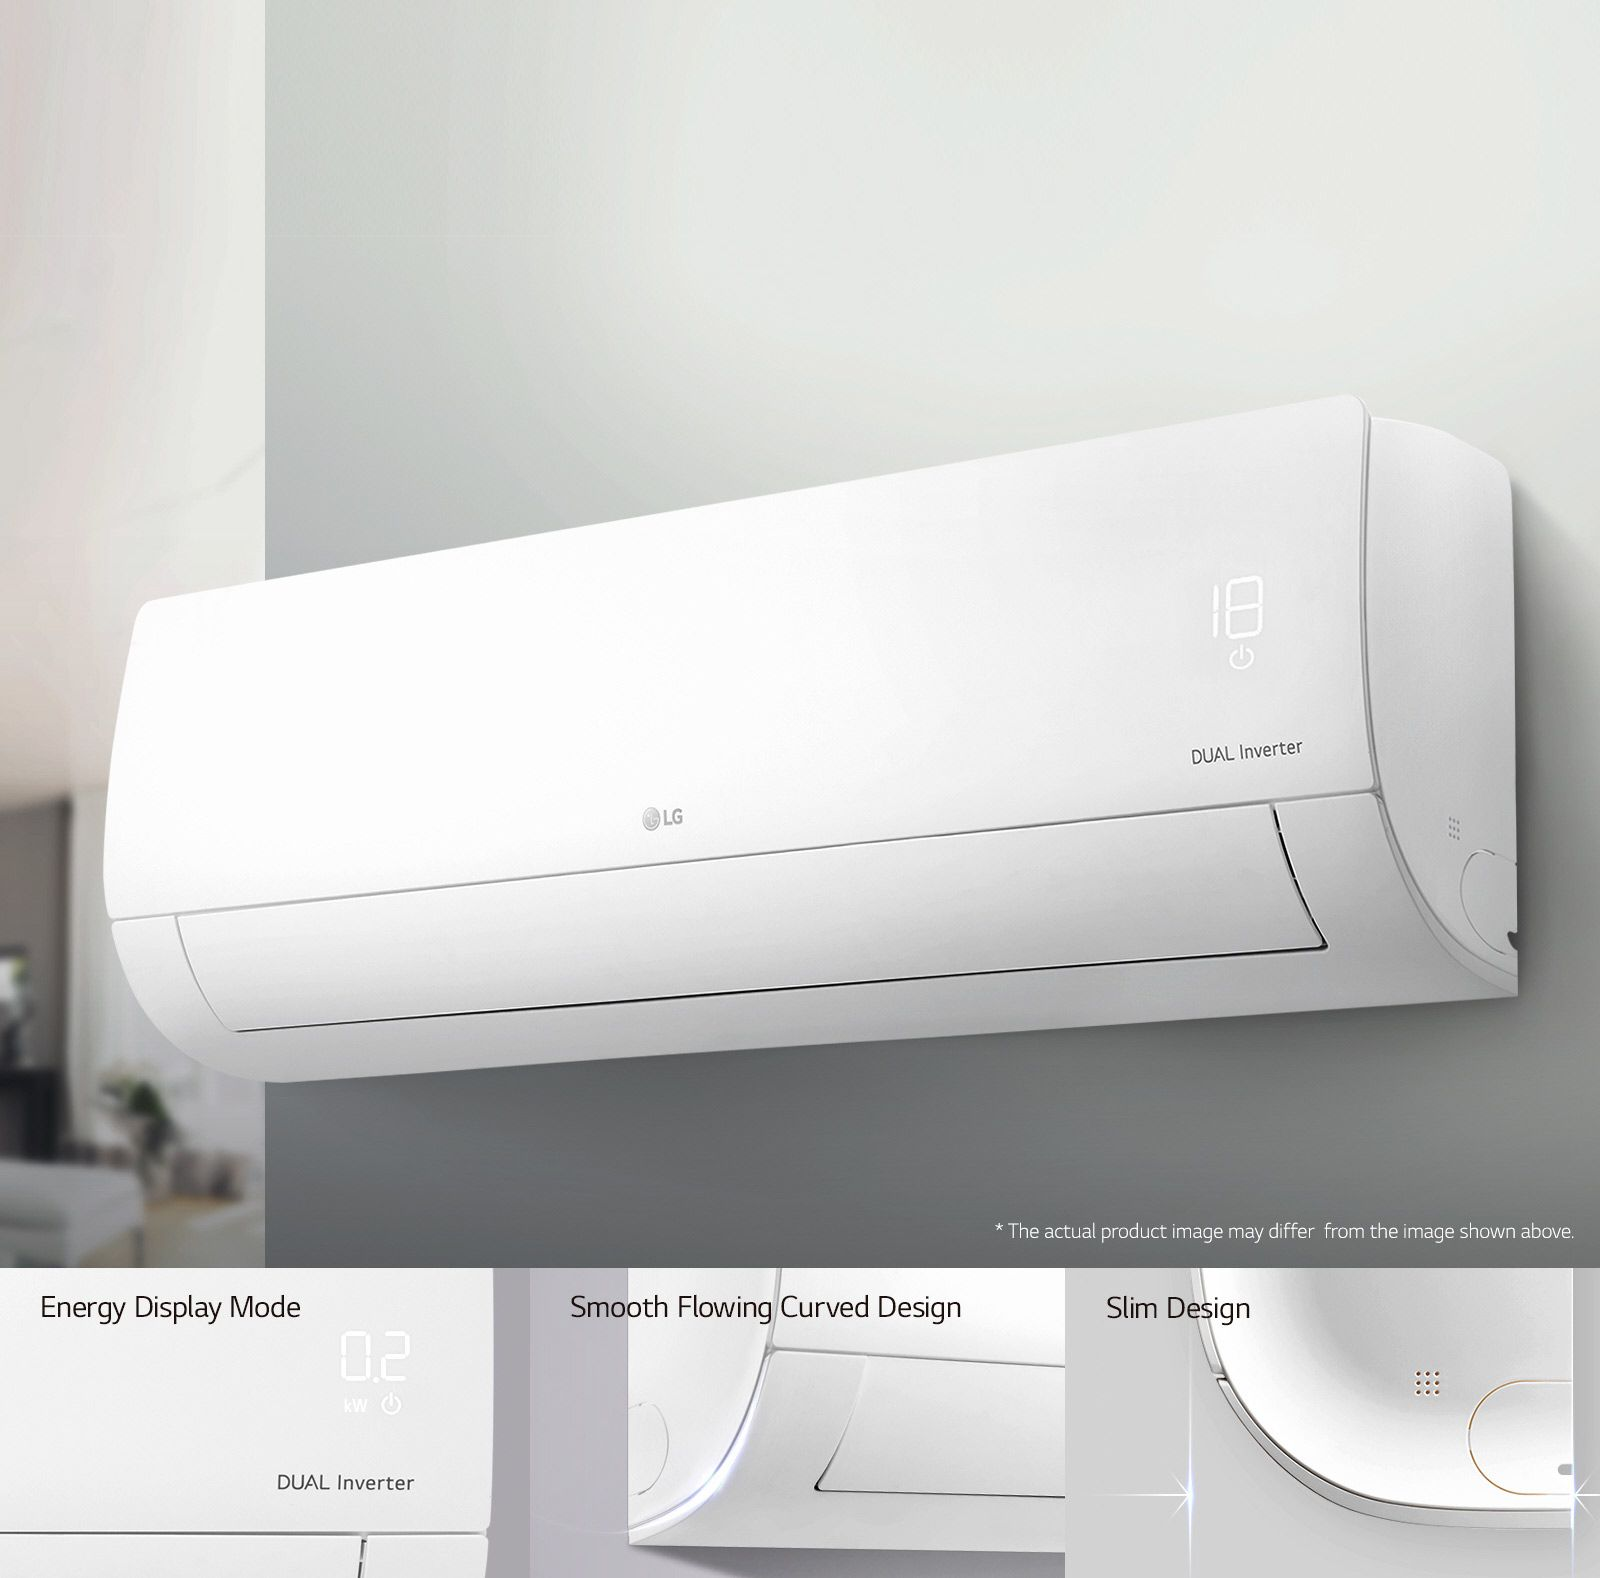 LG 1.5Hp Dual Inverter, R32 air conditioner